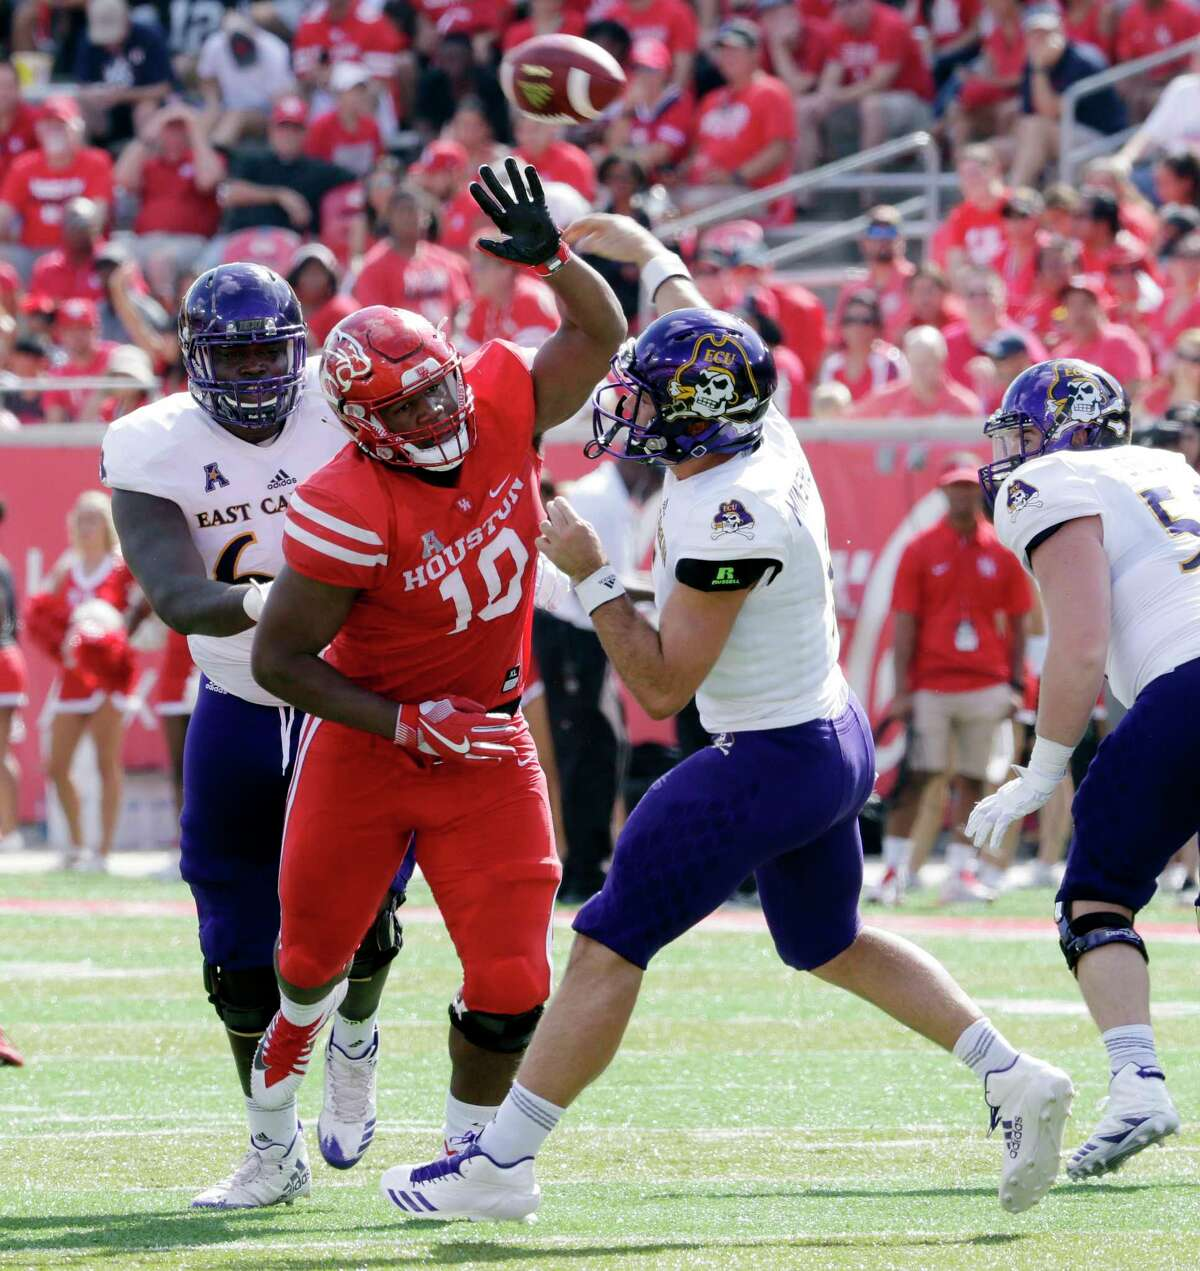 Houston defensive tackle Ed Oliver (10) tries to break up the pass by East Carolina quarterback Gardner Minshew (5) in the first half of their game, Nov. 4, 2017, in Houston, TX. (Michael Wyke / For the Chronicle)